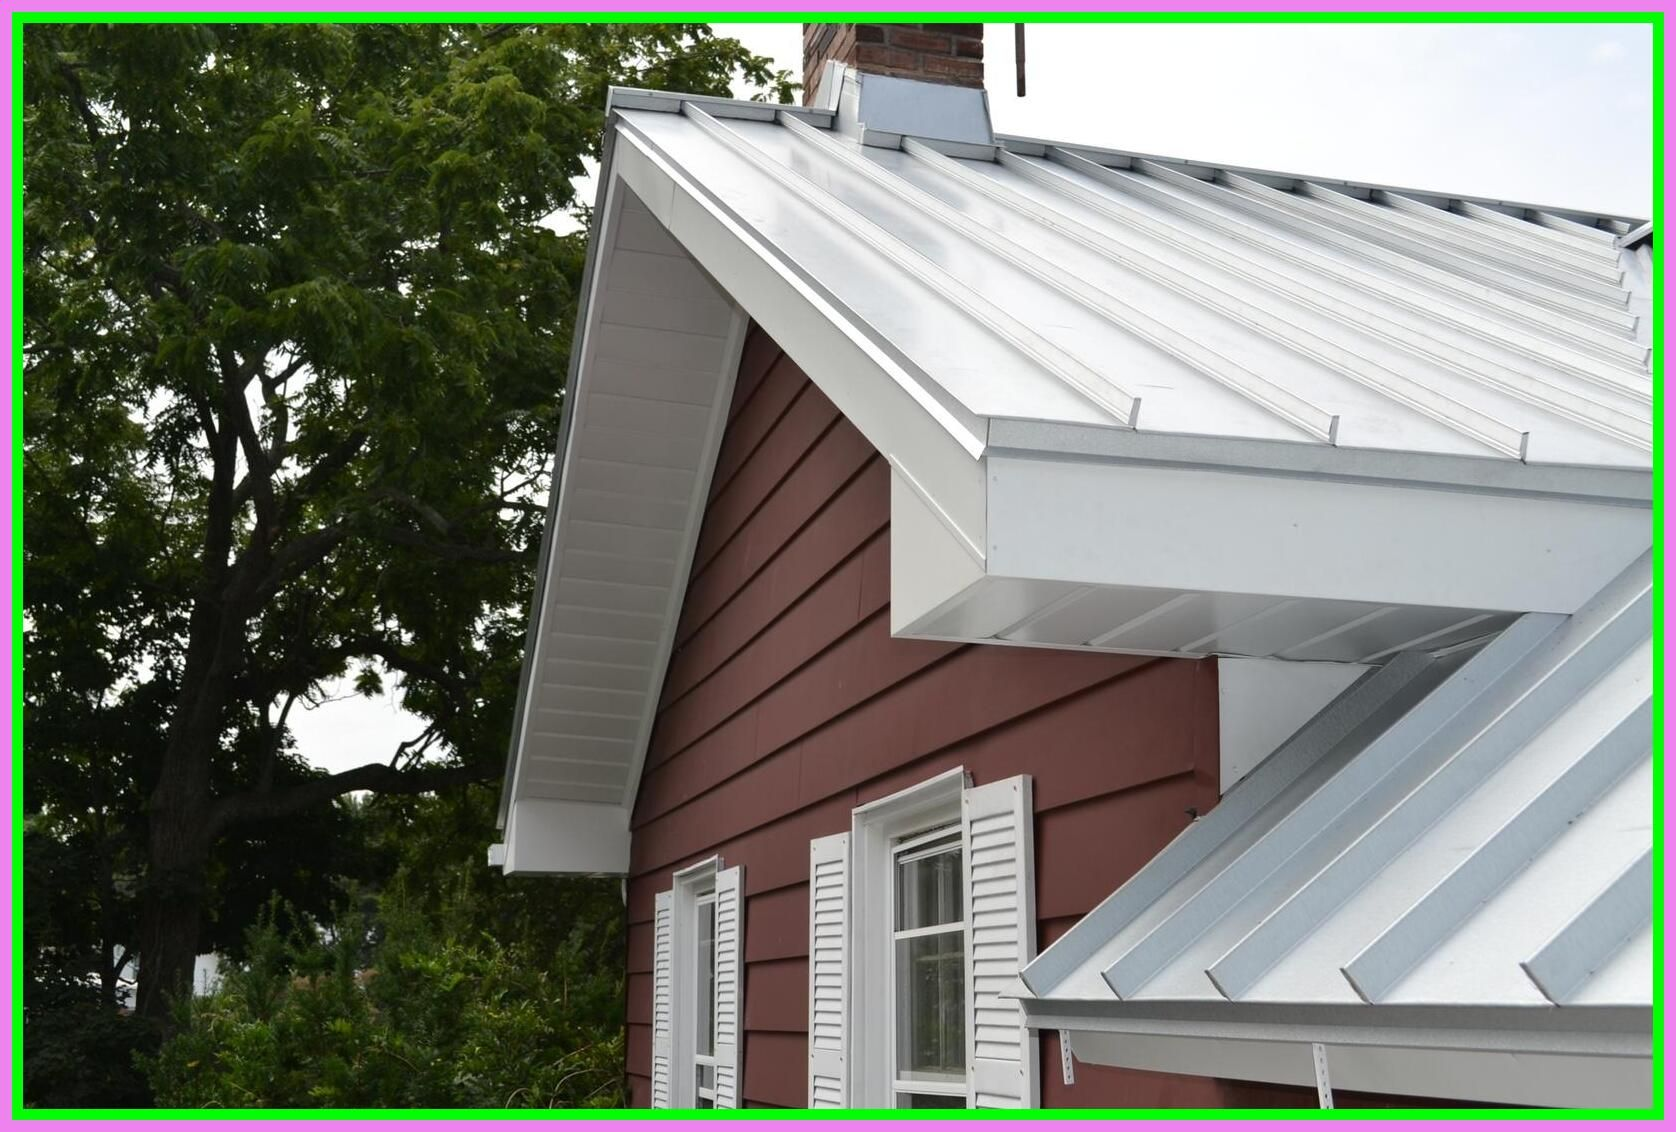 47 Reference Of Roof Flat Standing Seam Metal Roof In 2020 Standing Seam Metal Roof Metal Roof Cost Standing Seam